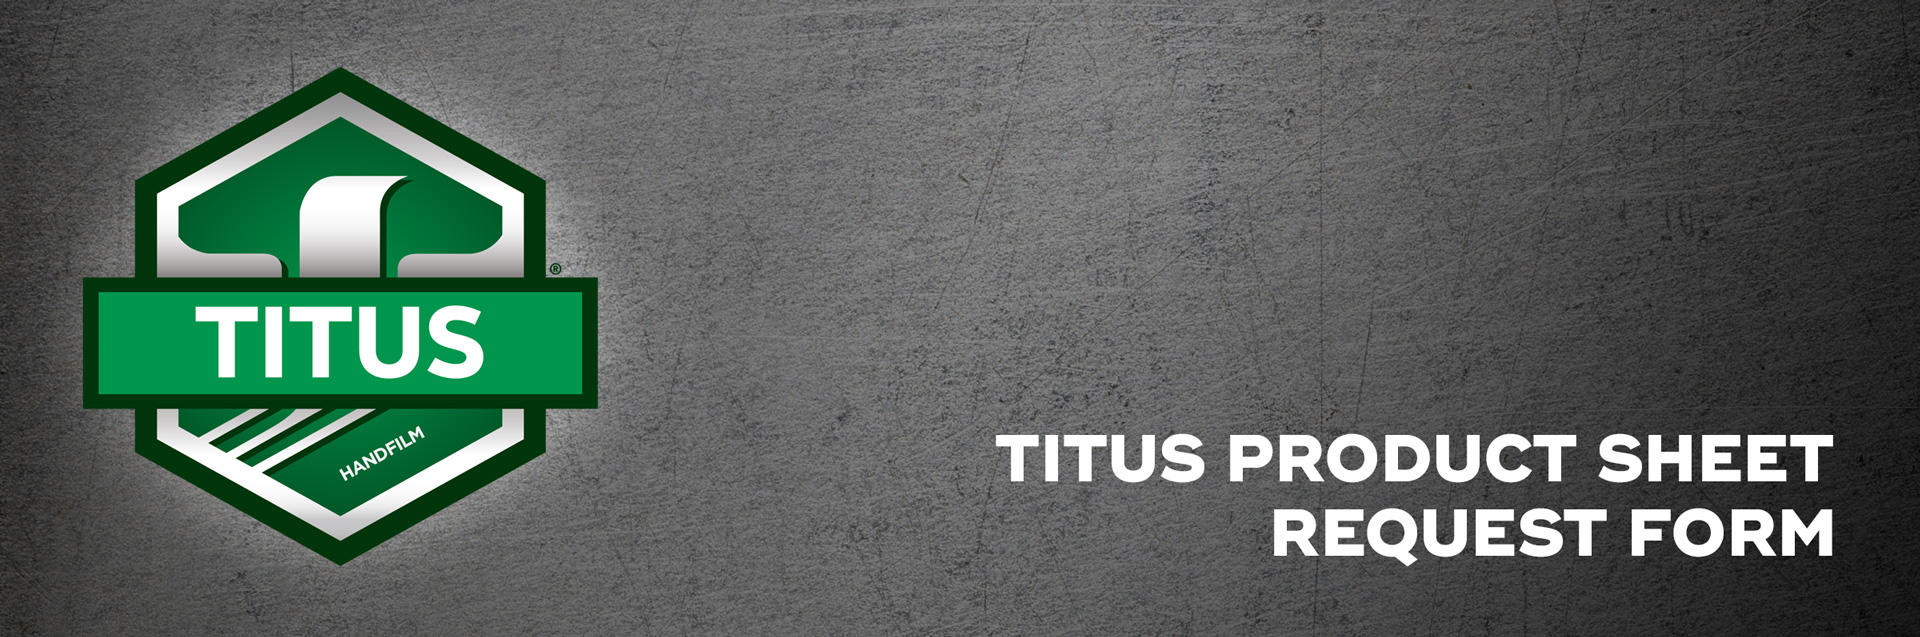 Titus-Product-Sheet-Request-Form-Hero